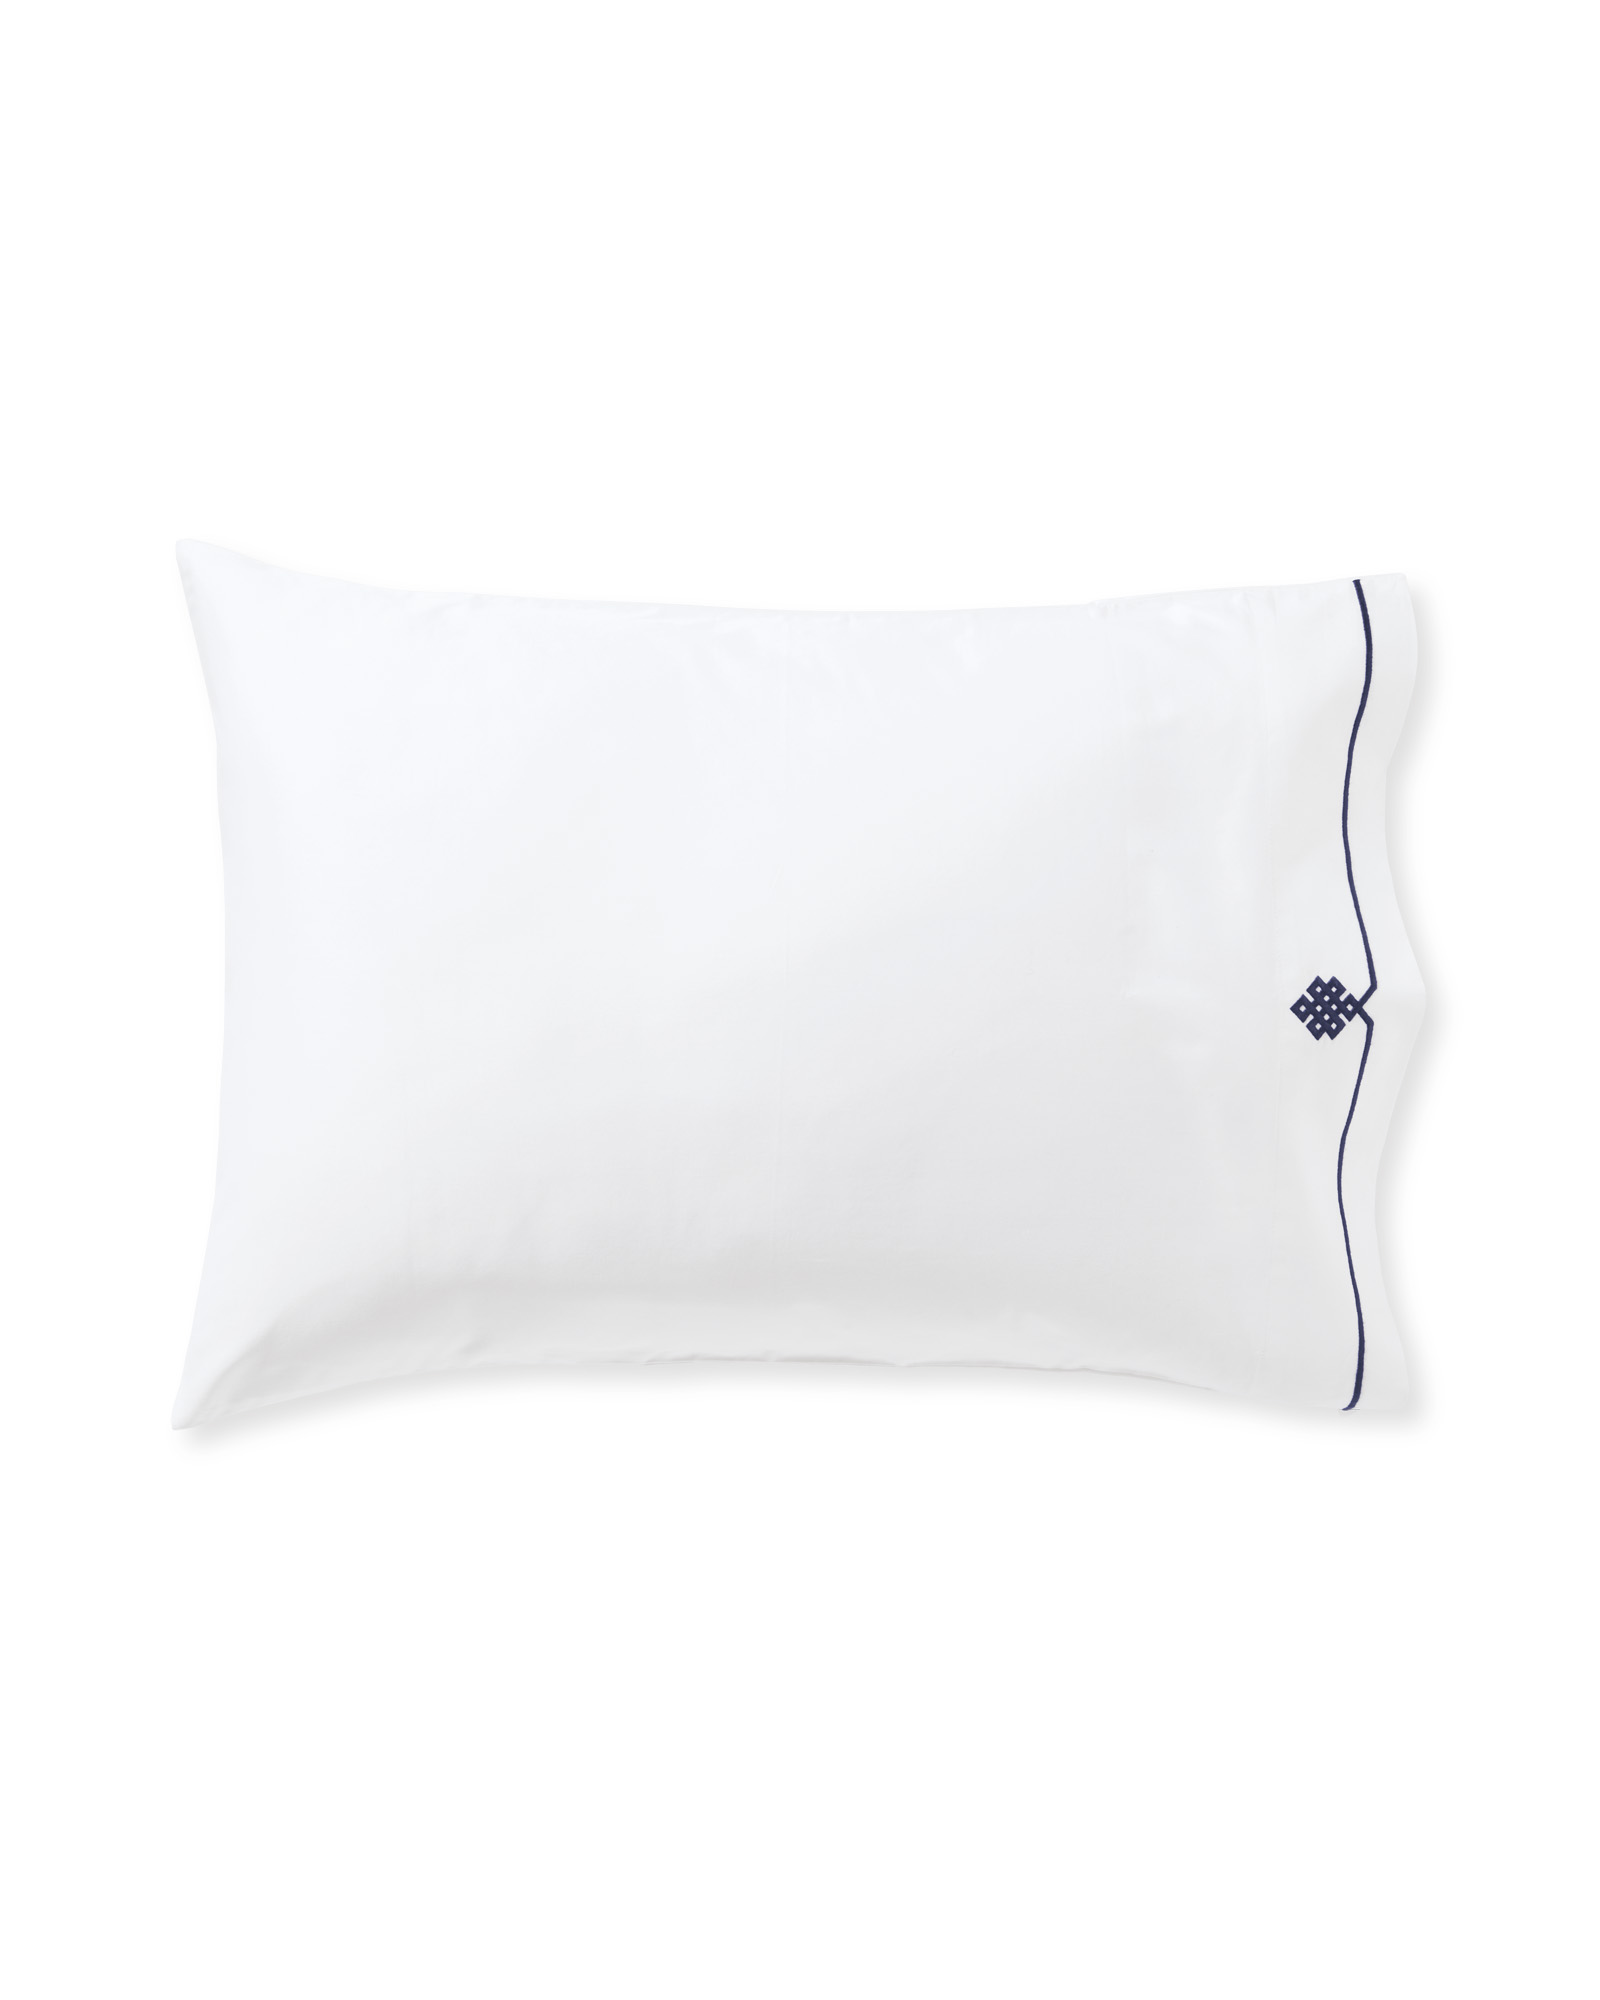 Soho Pillowcases (Extra Set of 2), Navy